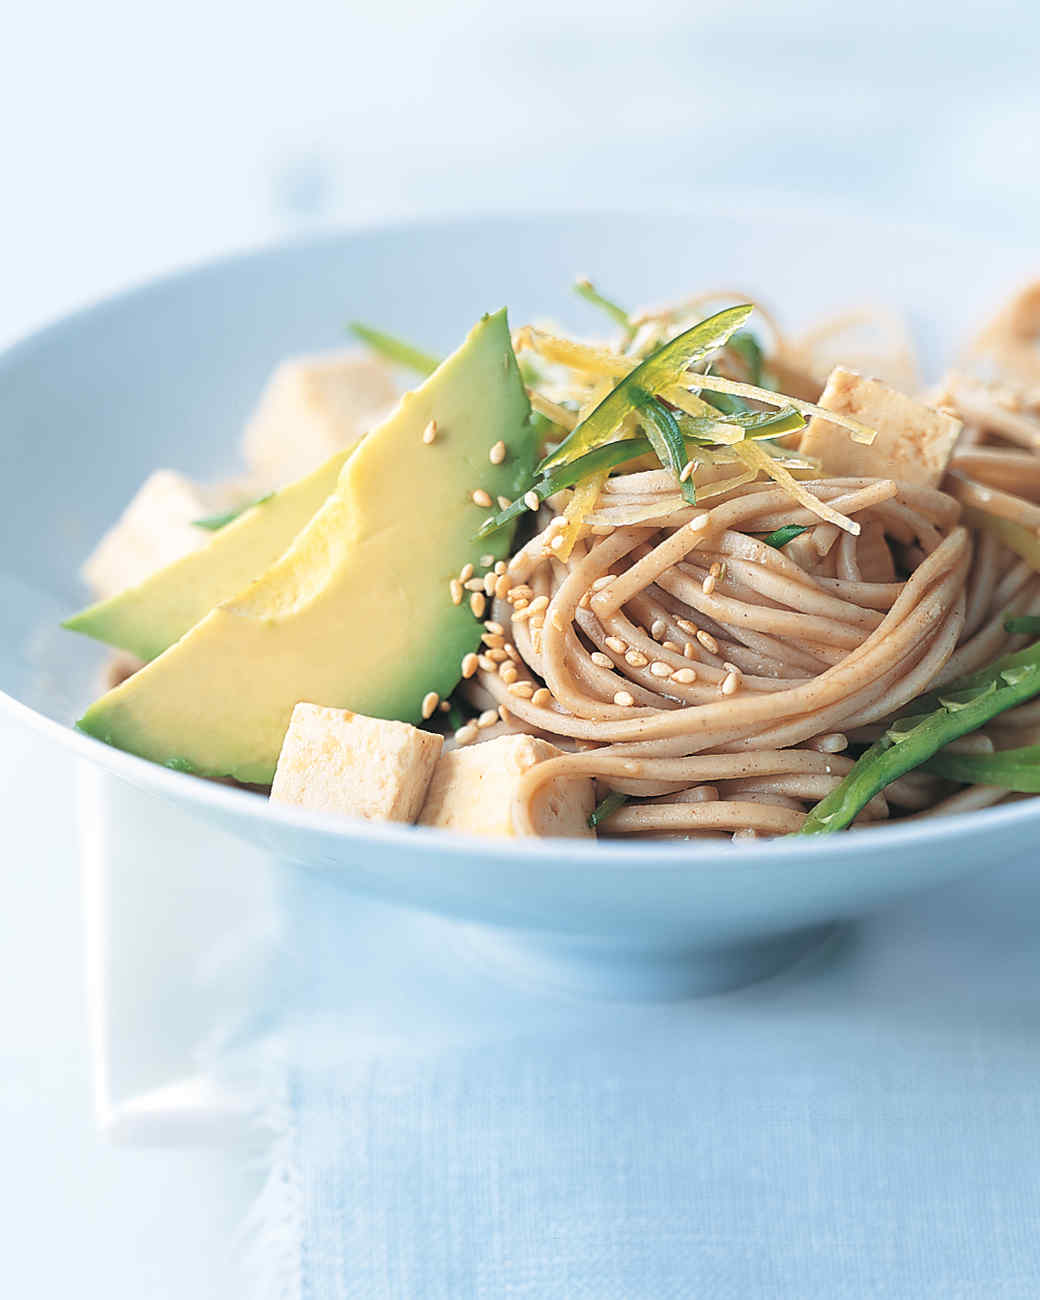 Soba Noodles with Tofu, Avocado, and Snow Peas